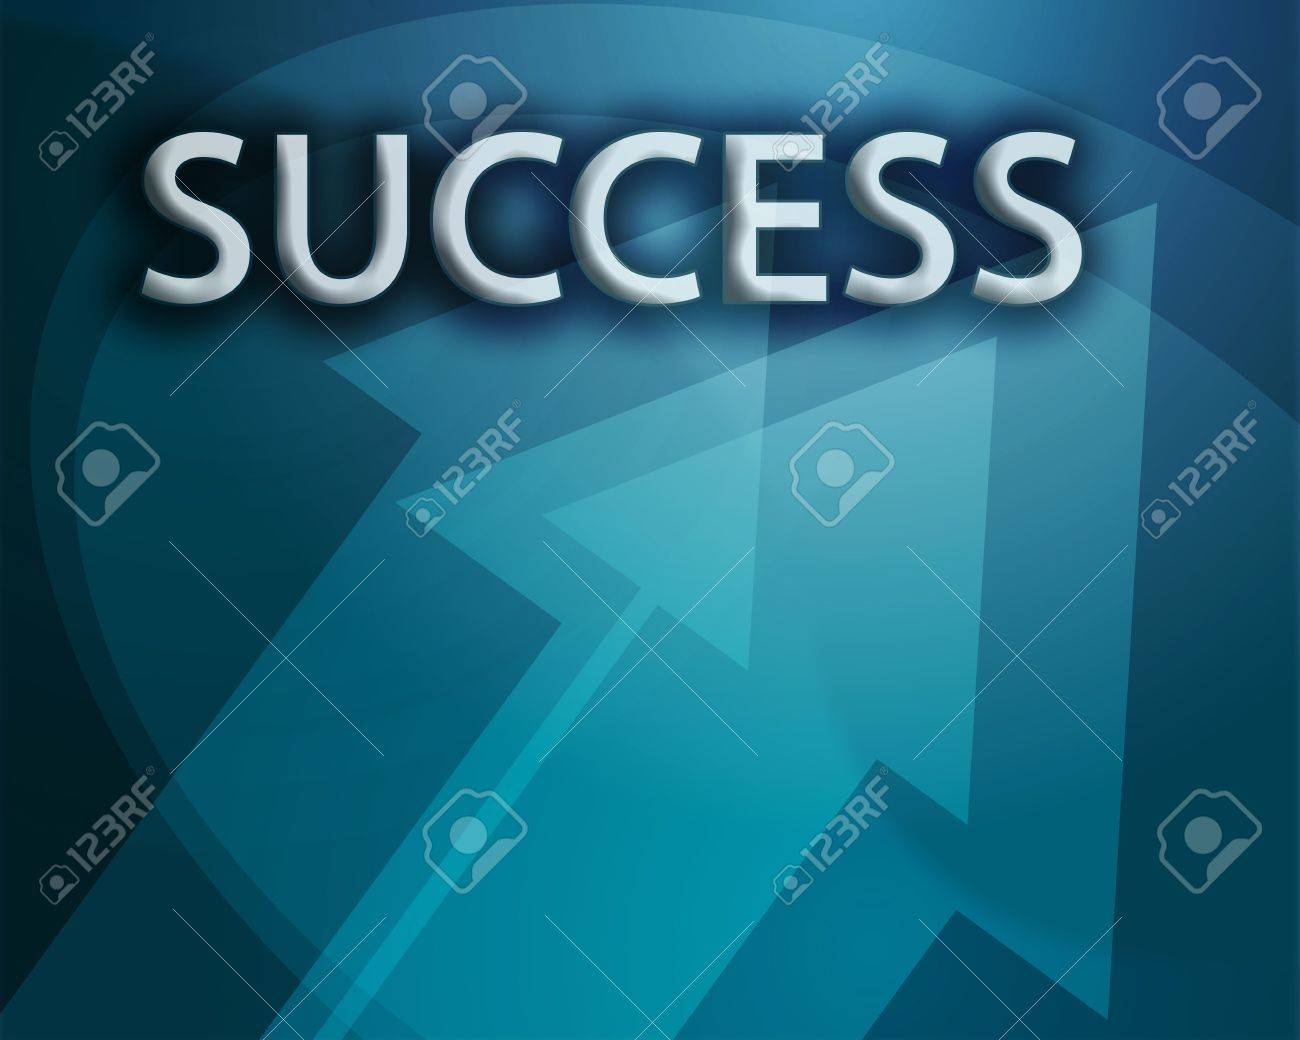 Success illustration, abstract management strategy concept clipart Stock Photo - 3742548